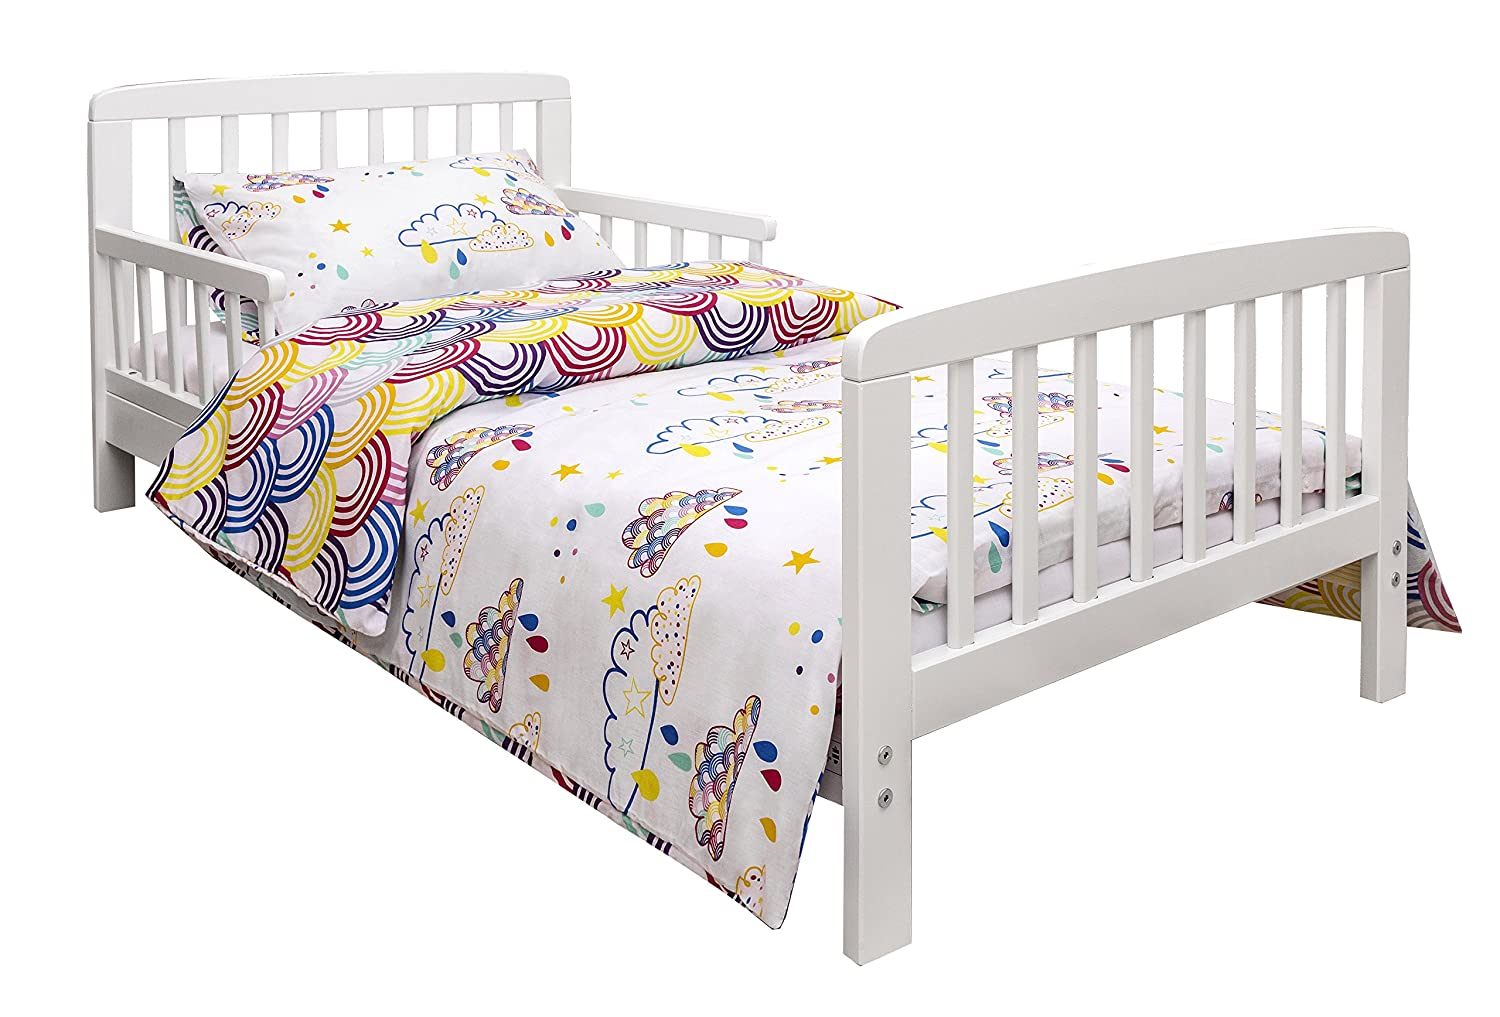 Kinder Valley Toddler Bedding Set, Whatever The Weather 70010